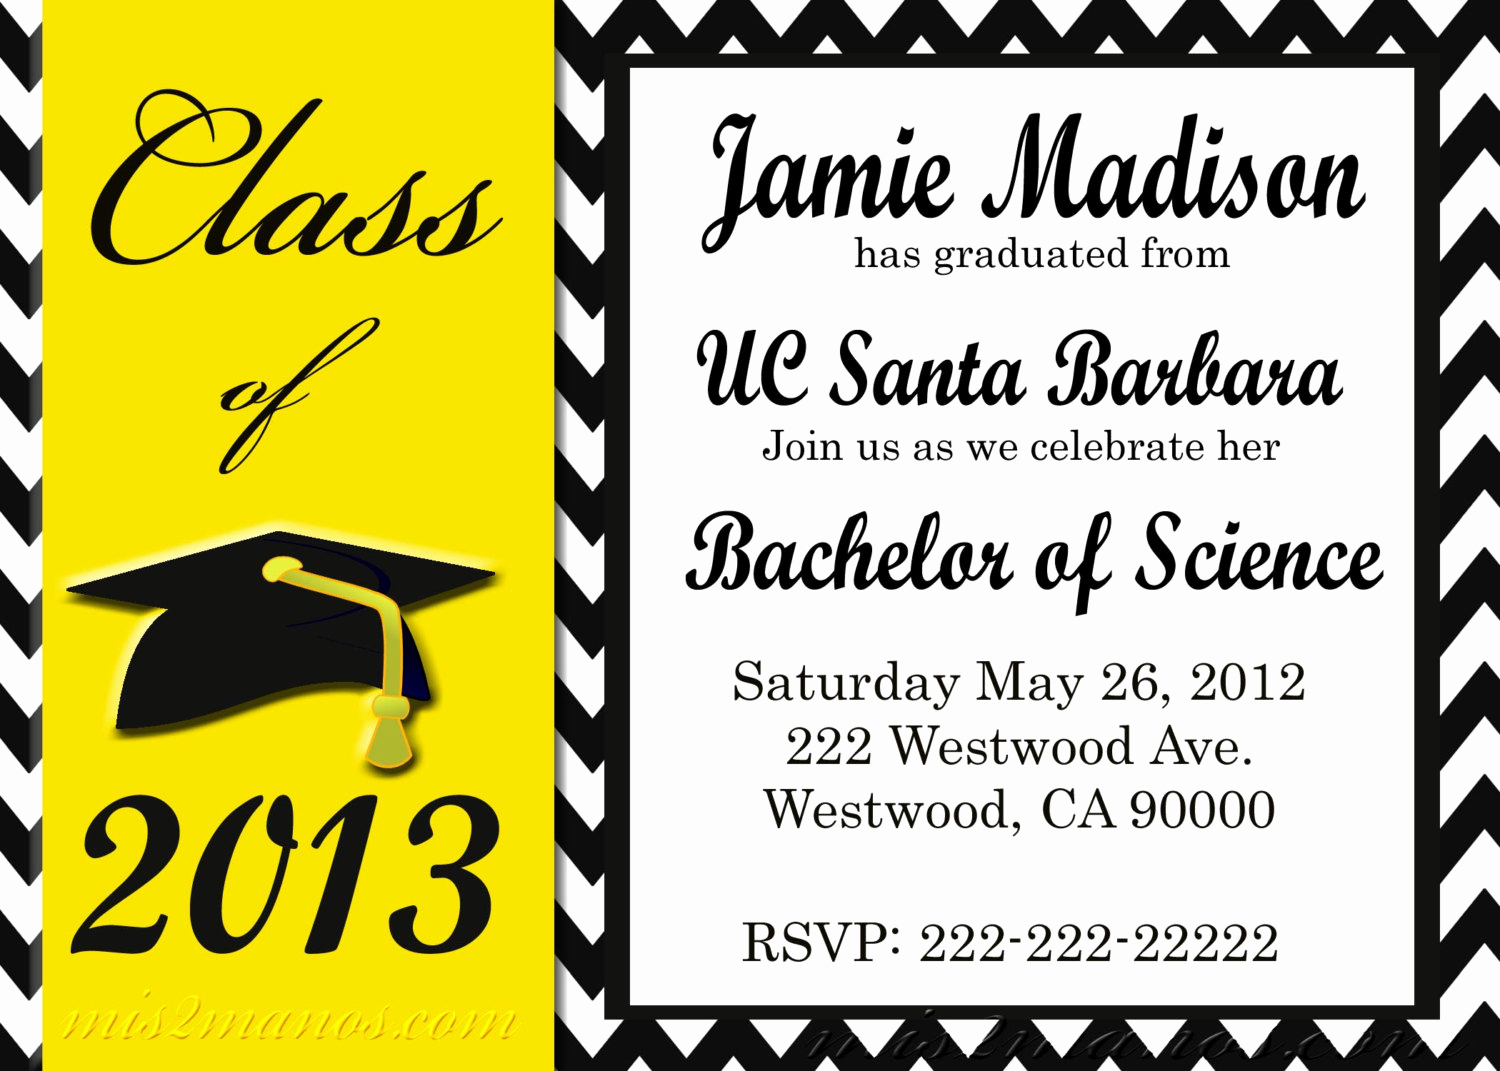 Download Graduation Invitation Template Awesome Graduation Invite Templates